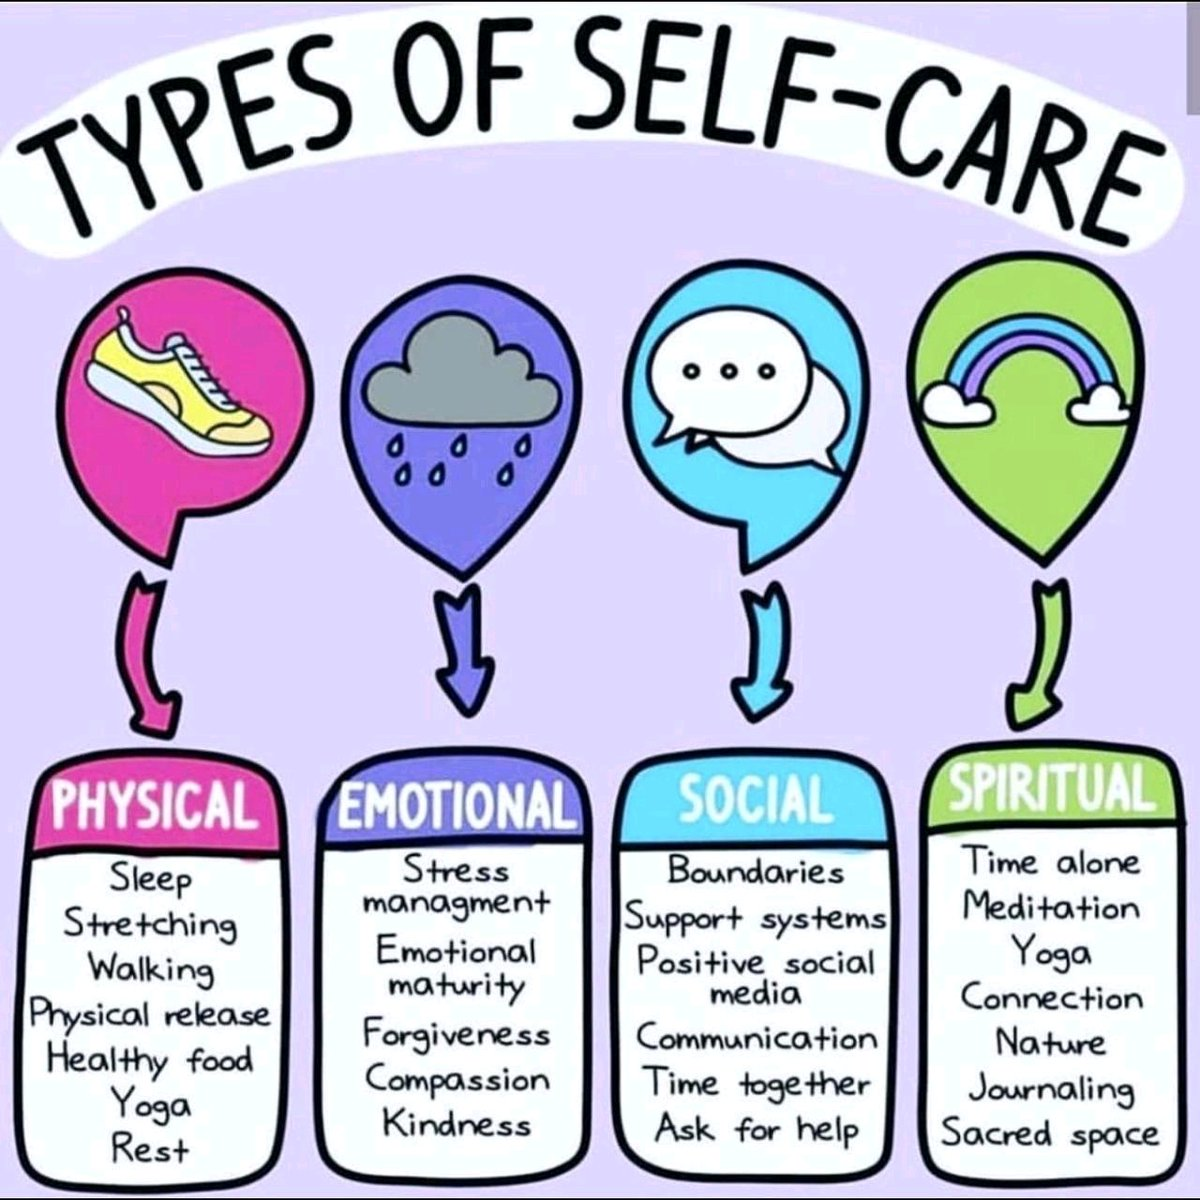 How are our Caregivers caring for themselves? Your answer matters.